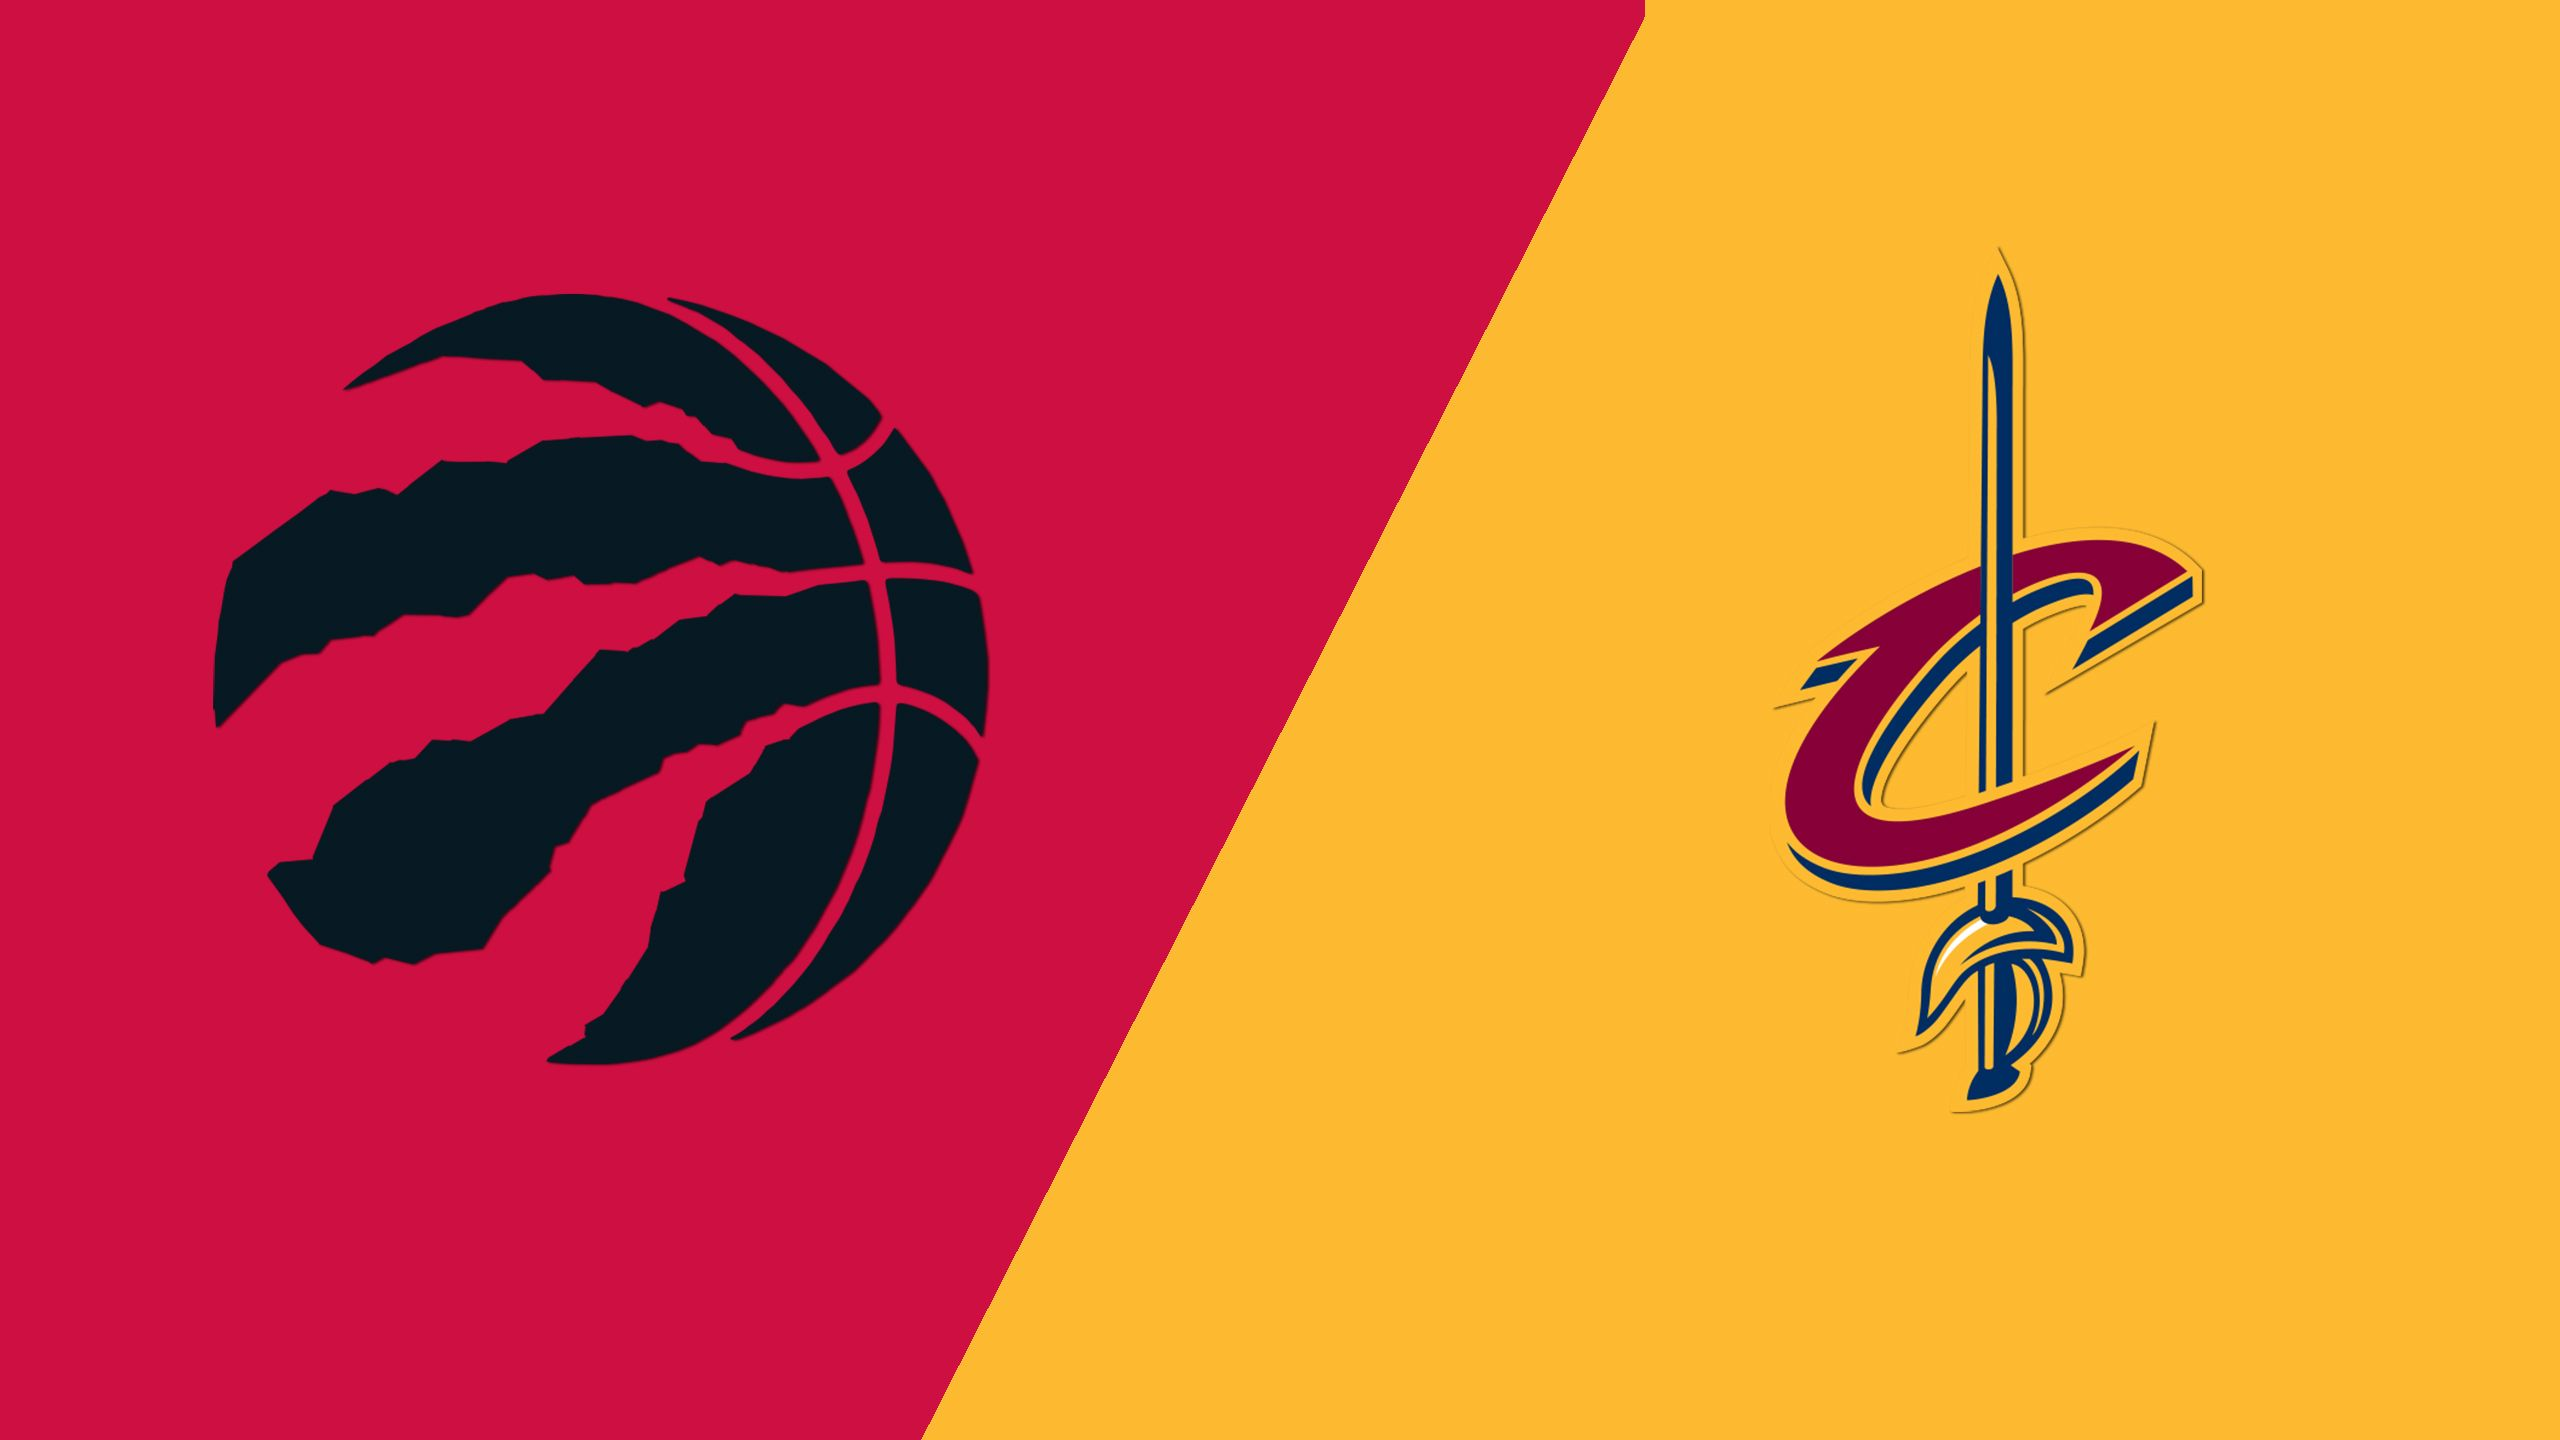 In Spanish - Toronto Raptors vs. Cleveland Cavaliers